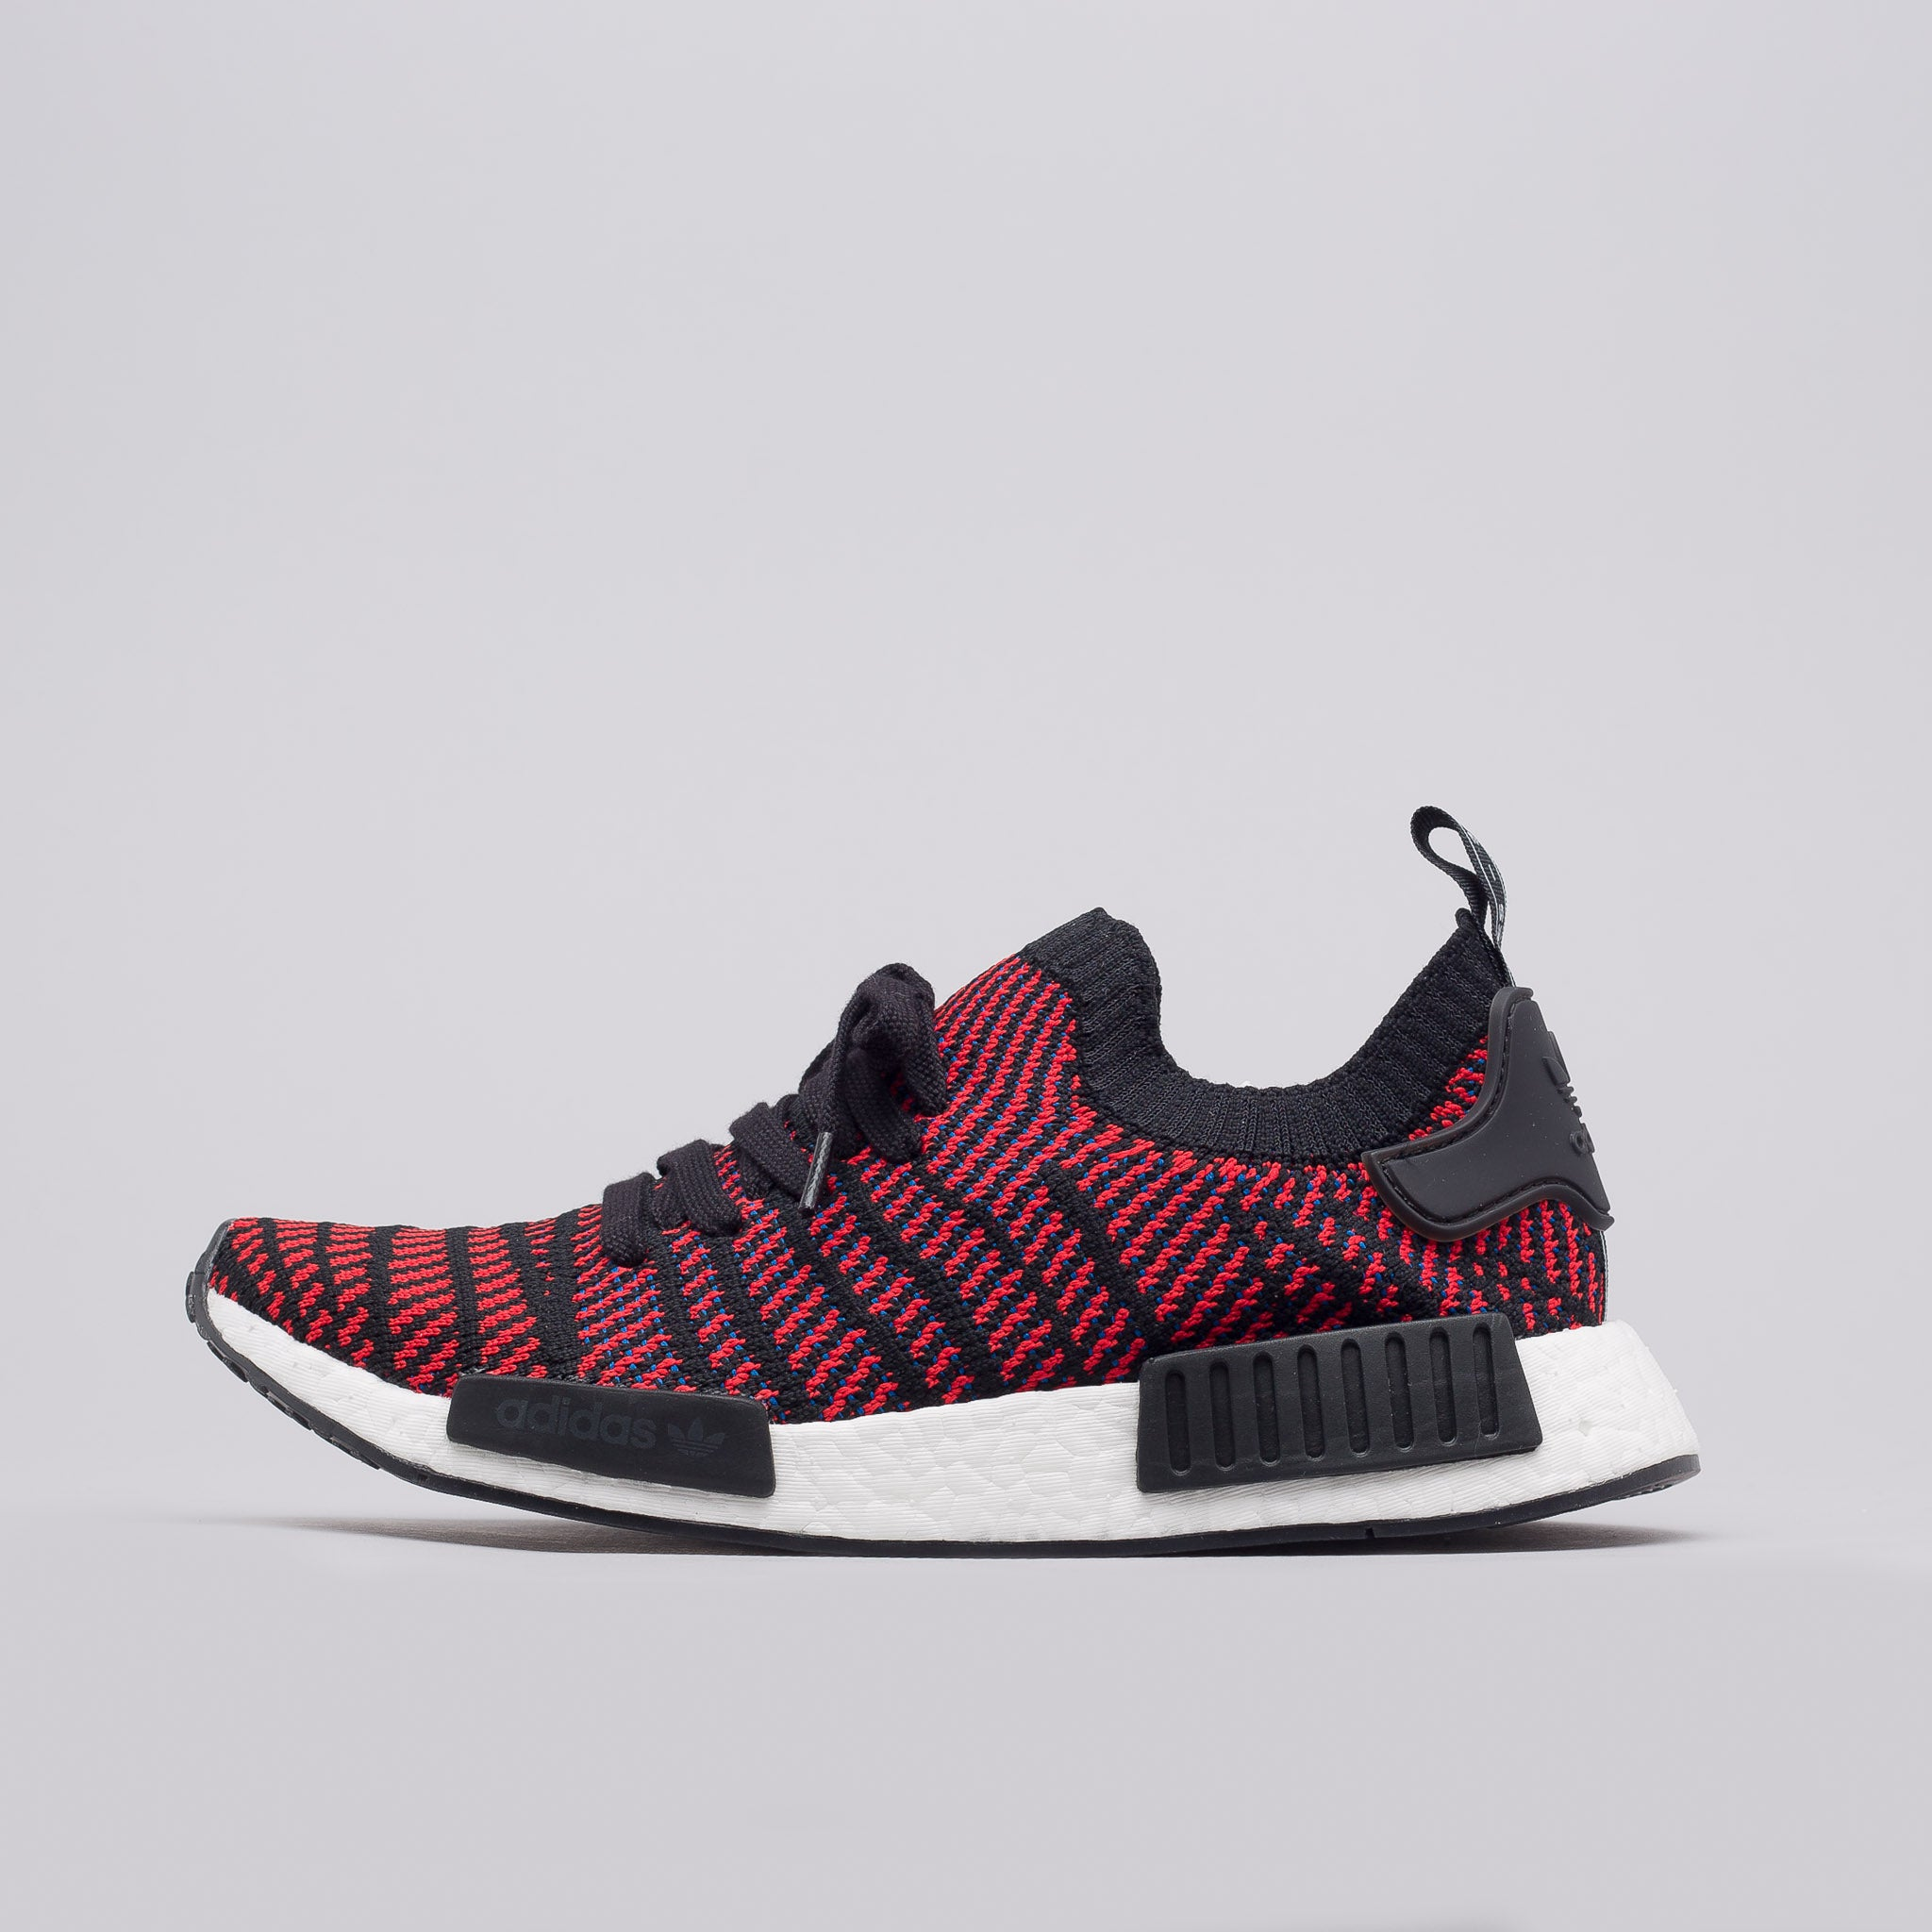 Adidas Nmd R1 Prime Knit Shock Pink Black Hers trainers Office